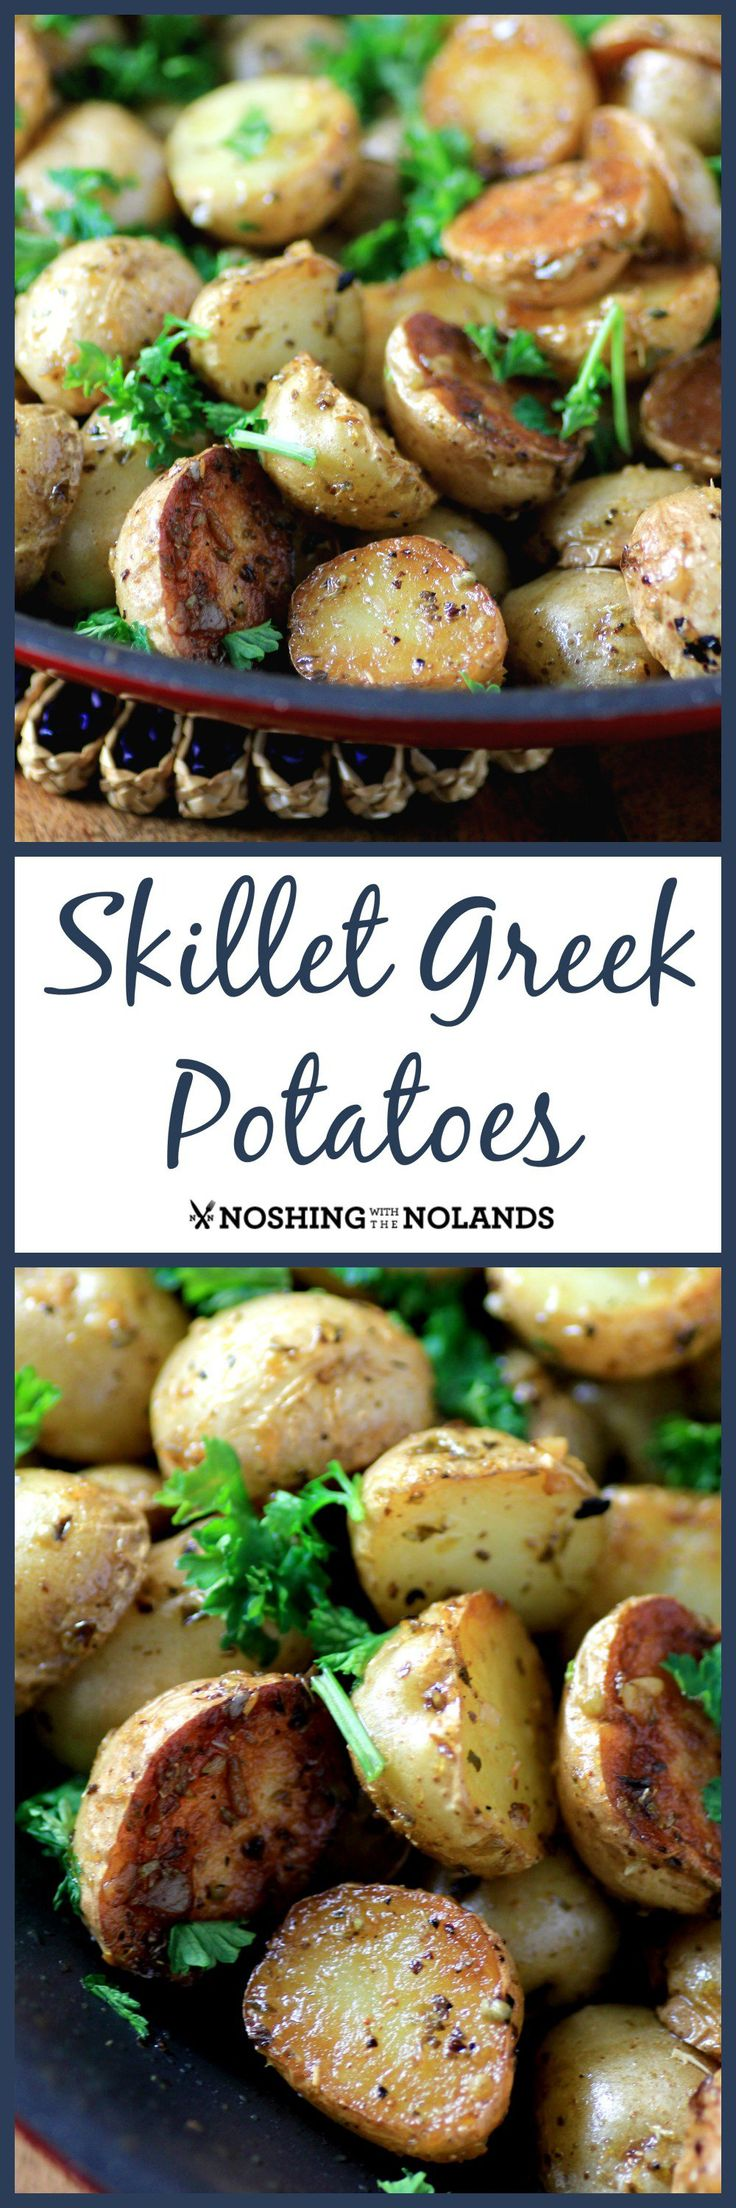 Skillet Greek Potatoes by Noshing With The Nolands are bursting with lemony, garlicky deliciousness! These crispy Creamer potatoes are quick and effortless to make!